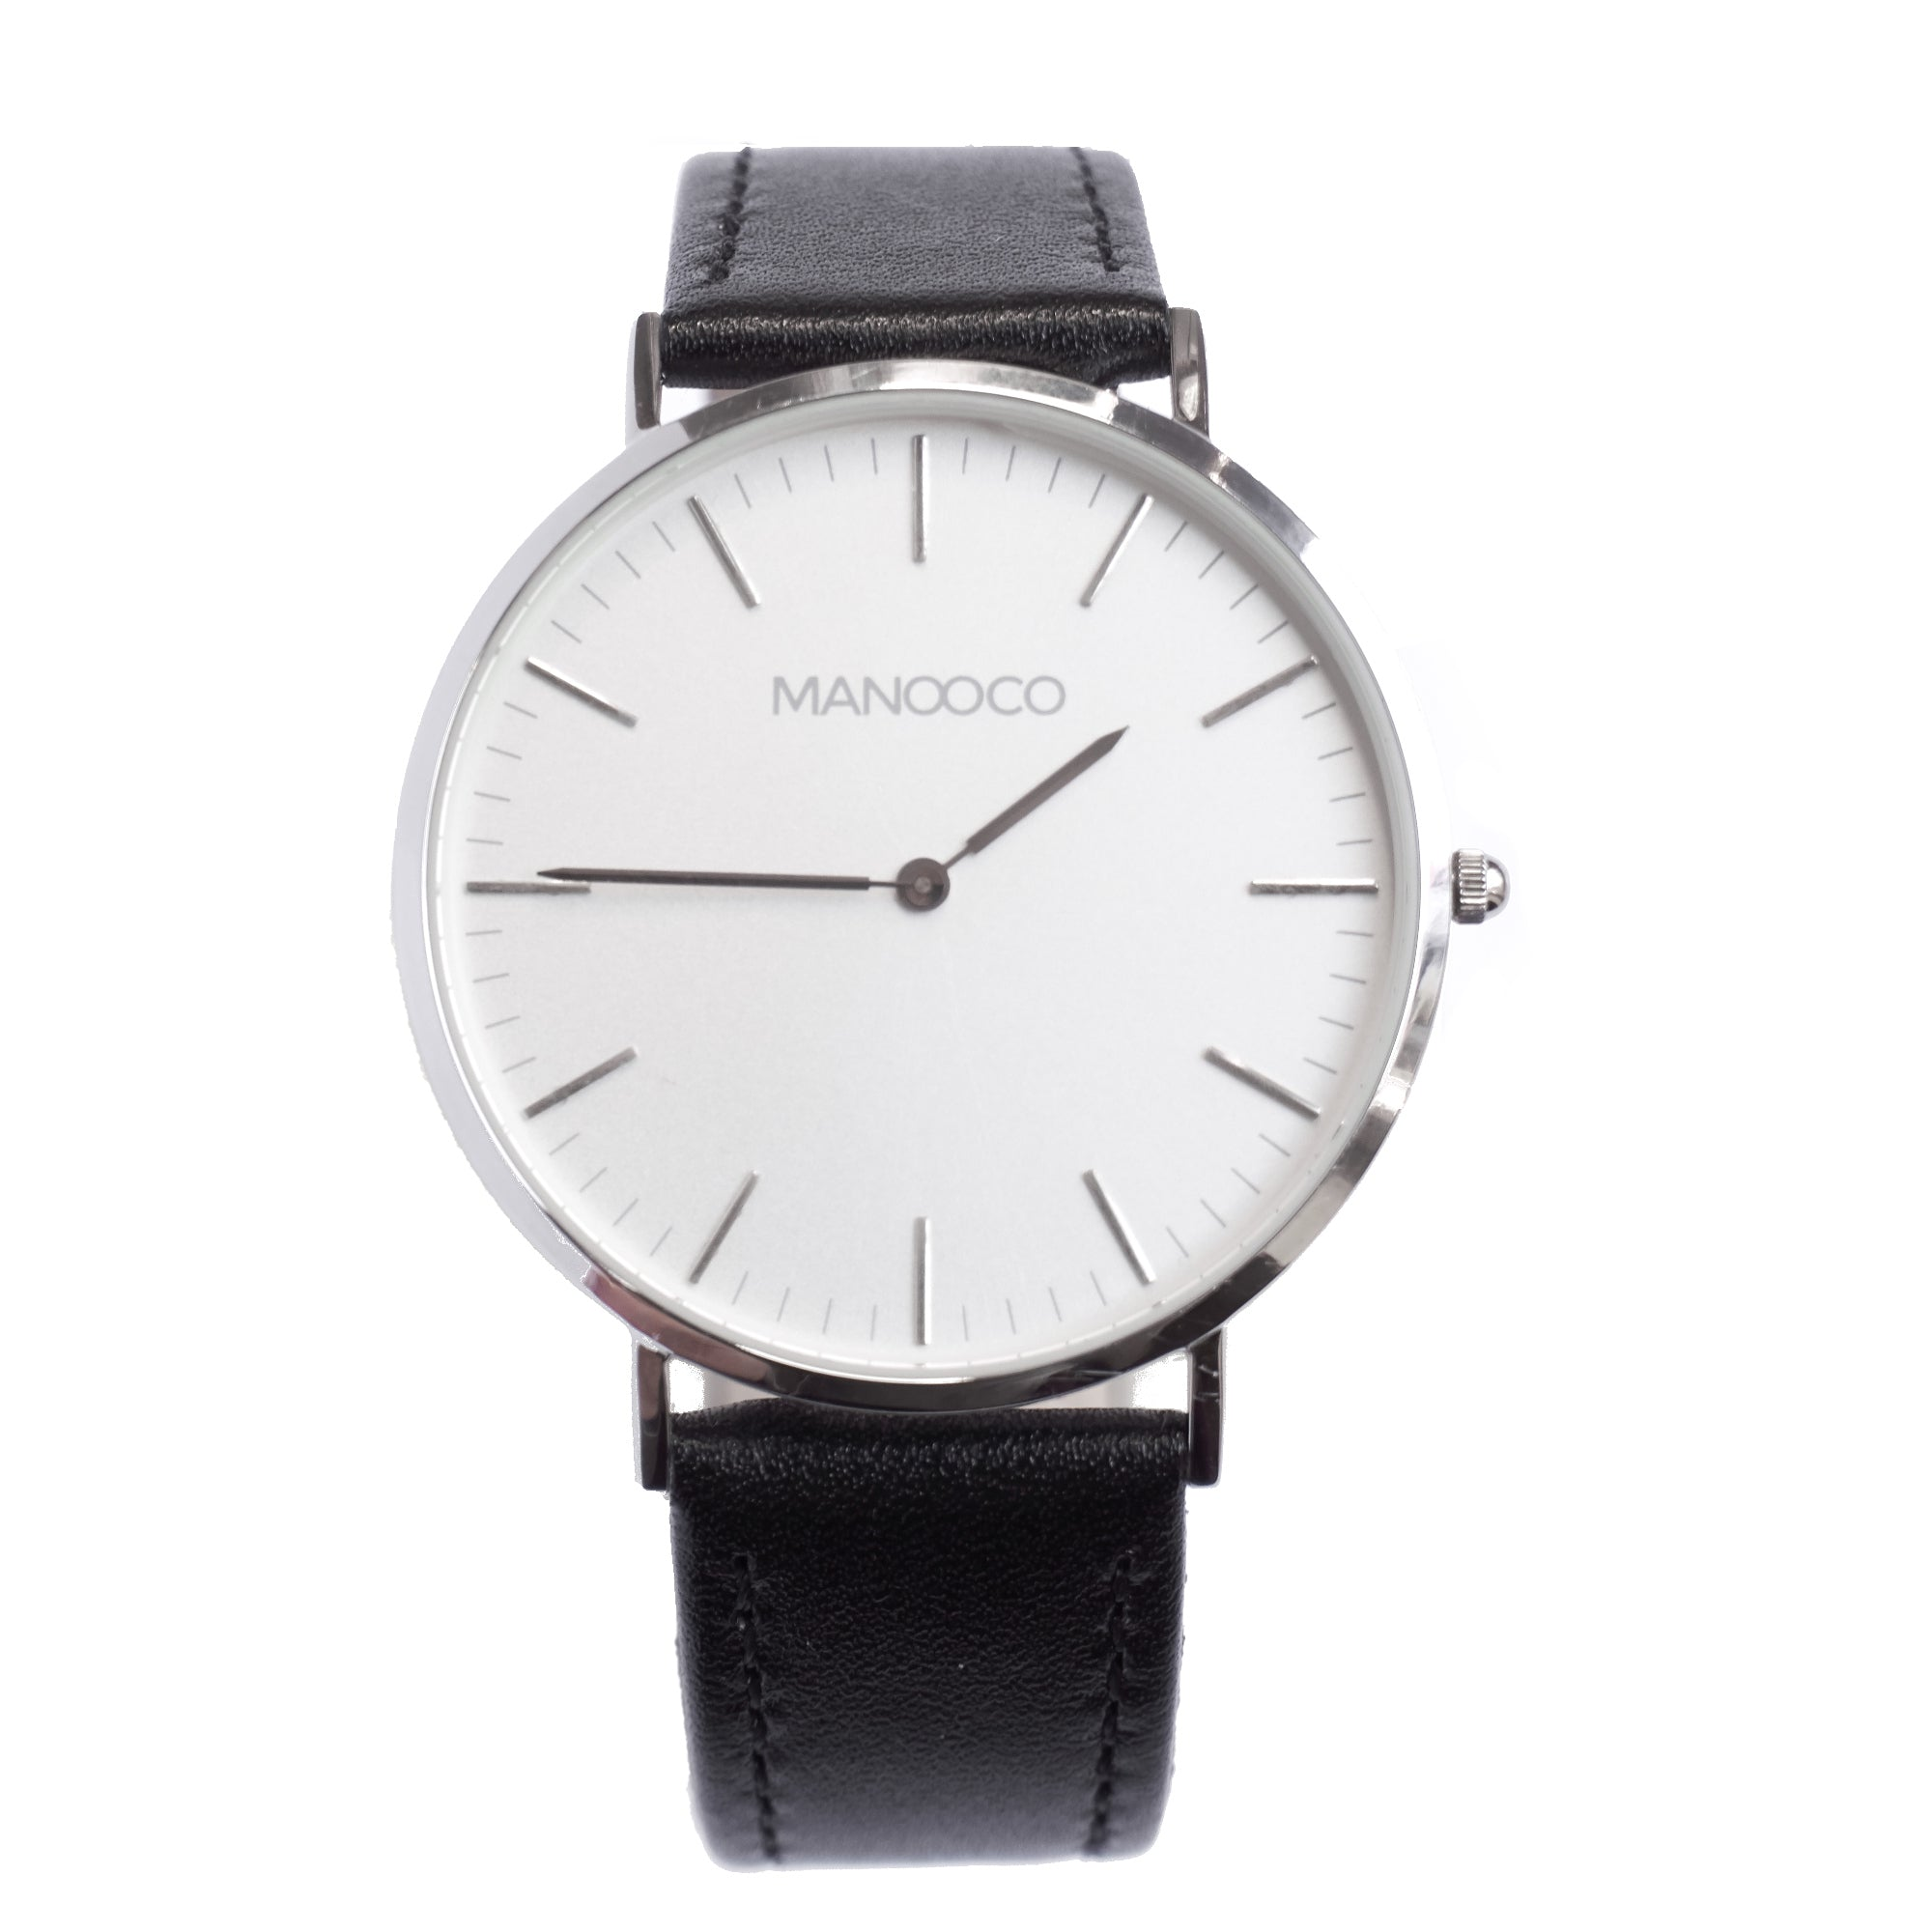 Zephyr Silver / Black Matt Leather - Watch - MANOOCO - Watch - manooco